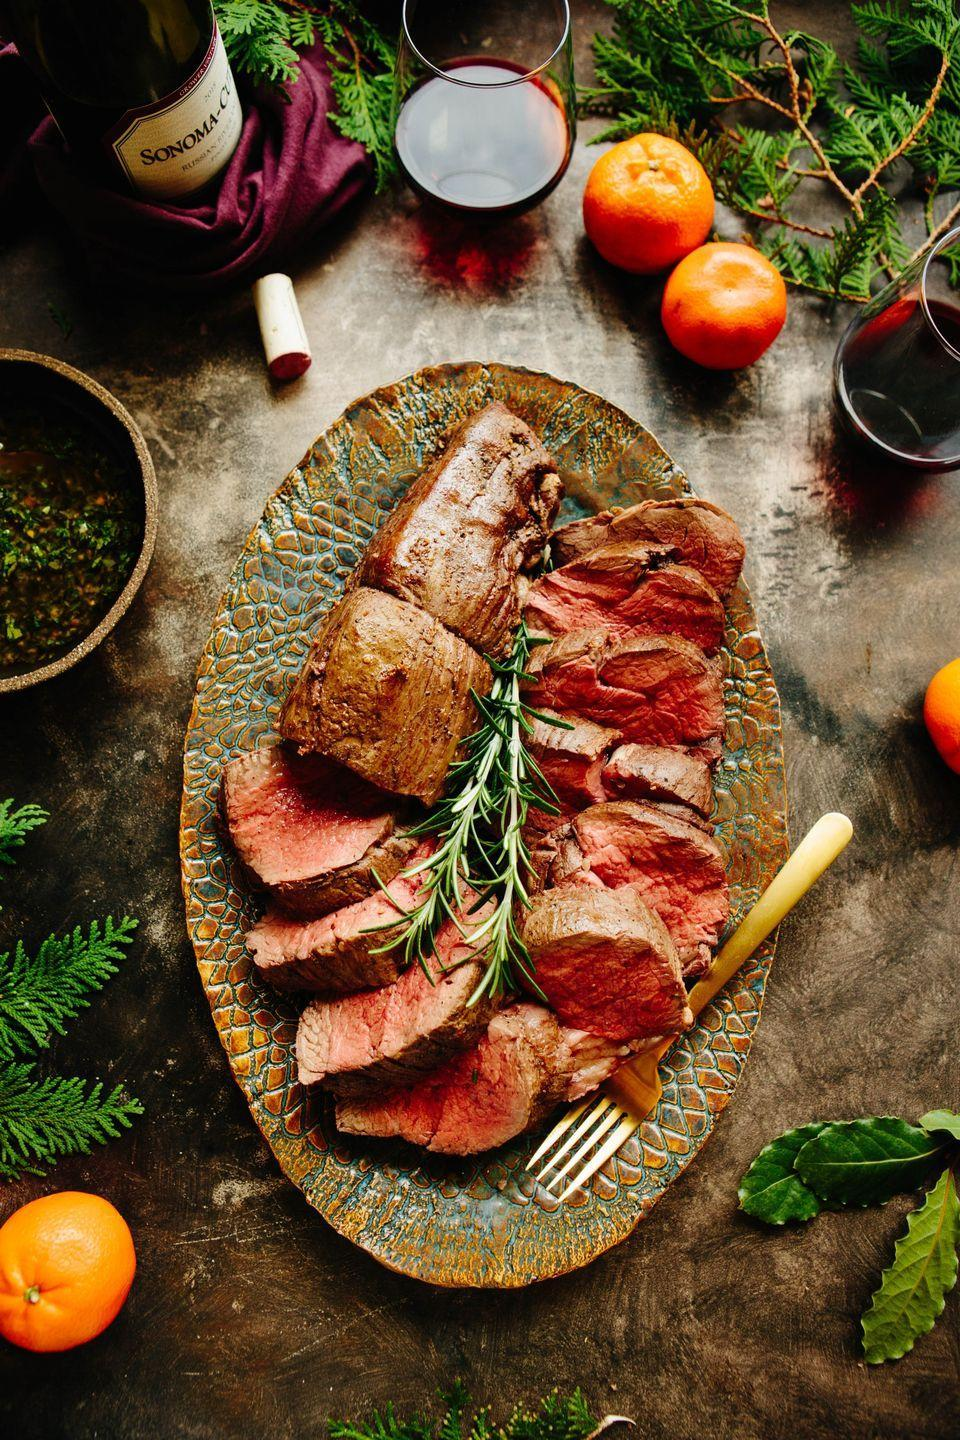 """<p>A beef tenderloin makes an incredible main course, especially if you're hosting a smaller dinner party. This recipe also gives steps to making a bordelaise sauce and a Chimichurri sauce.</p><p><strong>Get the recipe at <a href=""""https://coleycooks.com/whole-roasted-beef-tenderloin/"""" rel=""""nofollow noopener"""" target=""""_blank"""" data-ylk=""""slk:Coley Cooks"""" class=""""link rapid-noclick-resp"""">Coley Cooks</a>.</strong> </p>"""